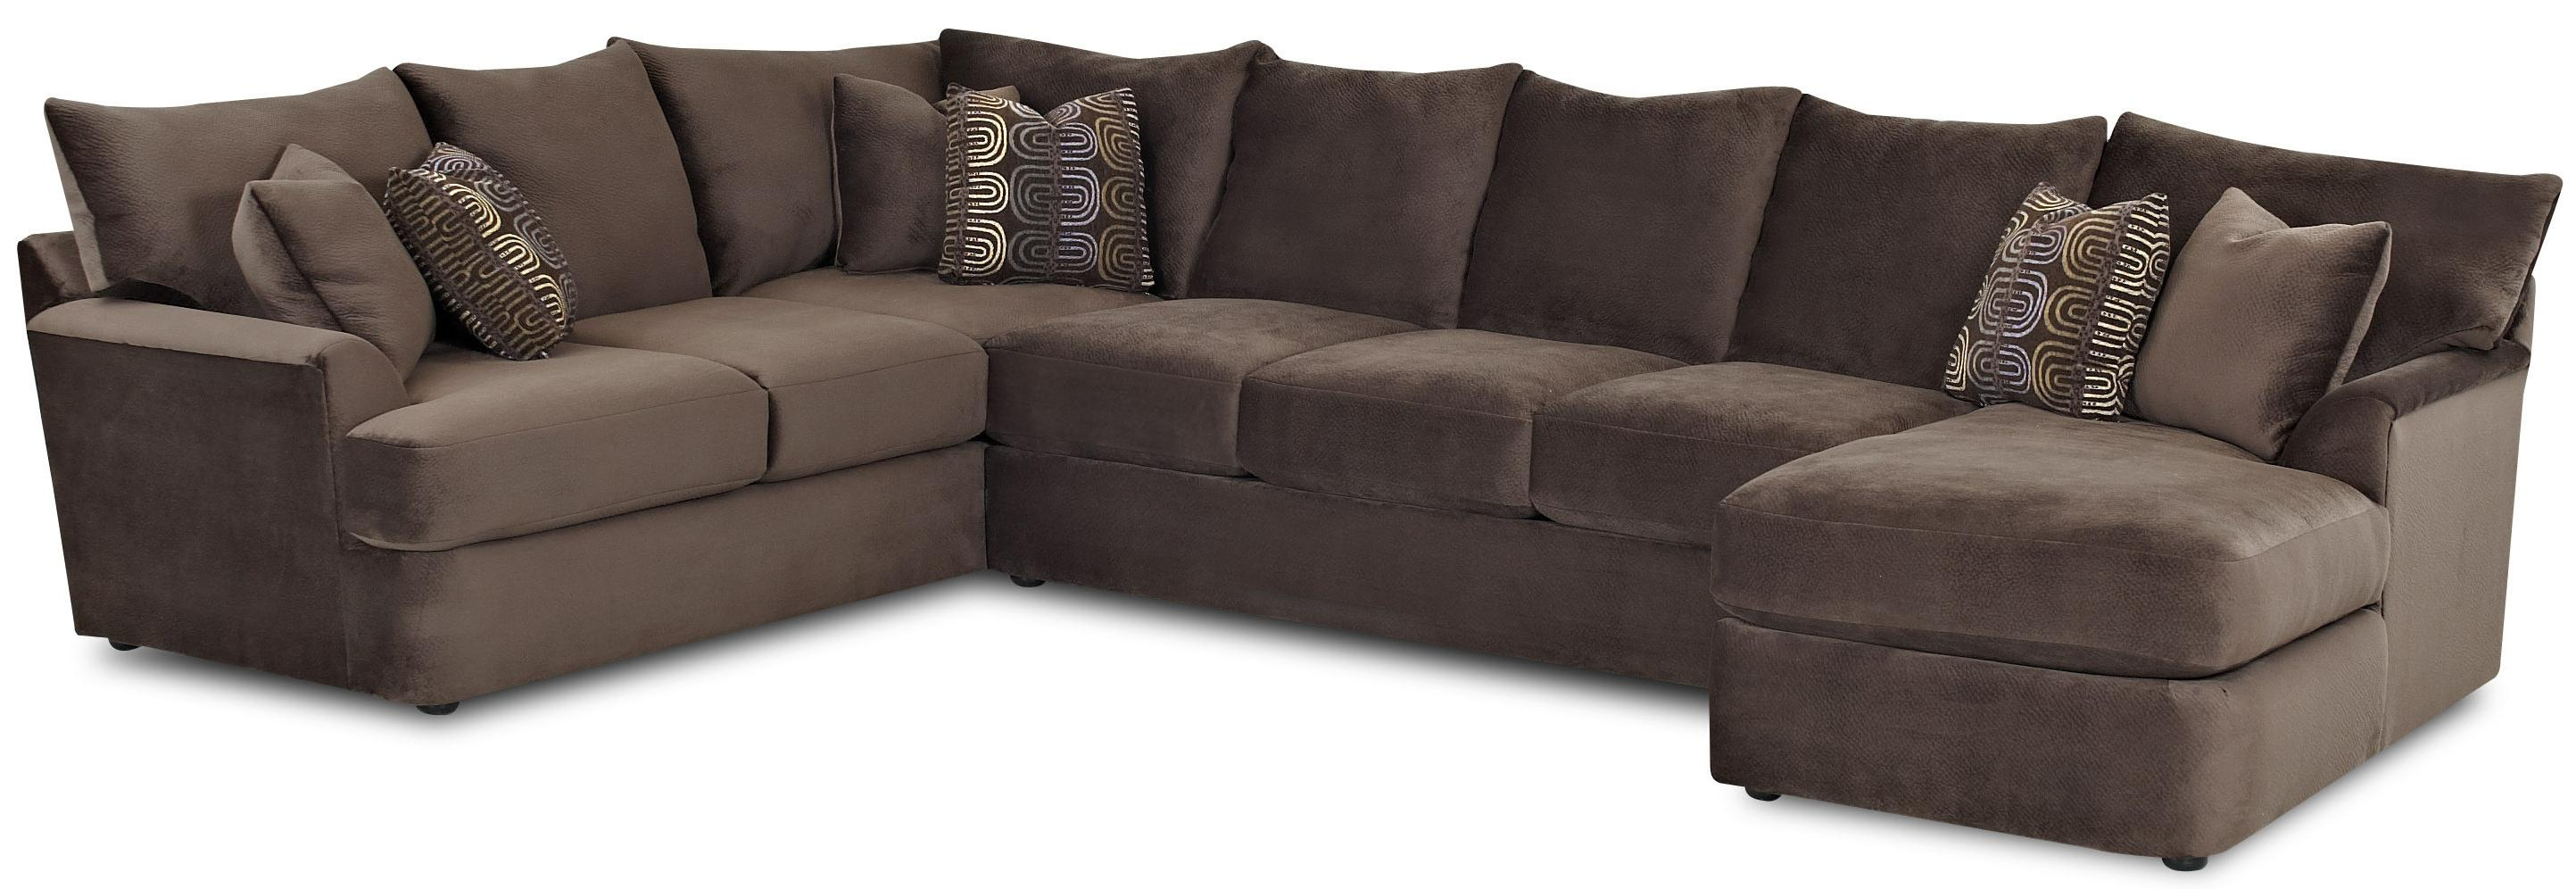 klaussner findley l shaped sectional sofa with right chaise dunk bright furniture. Black Bedroom Furniture Sets. Home Design Ideas